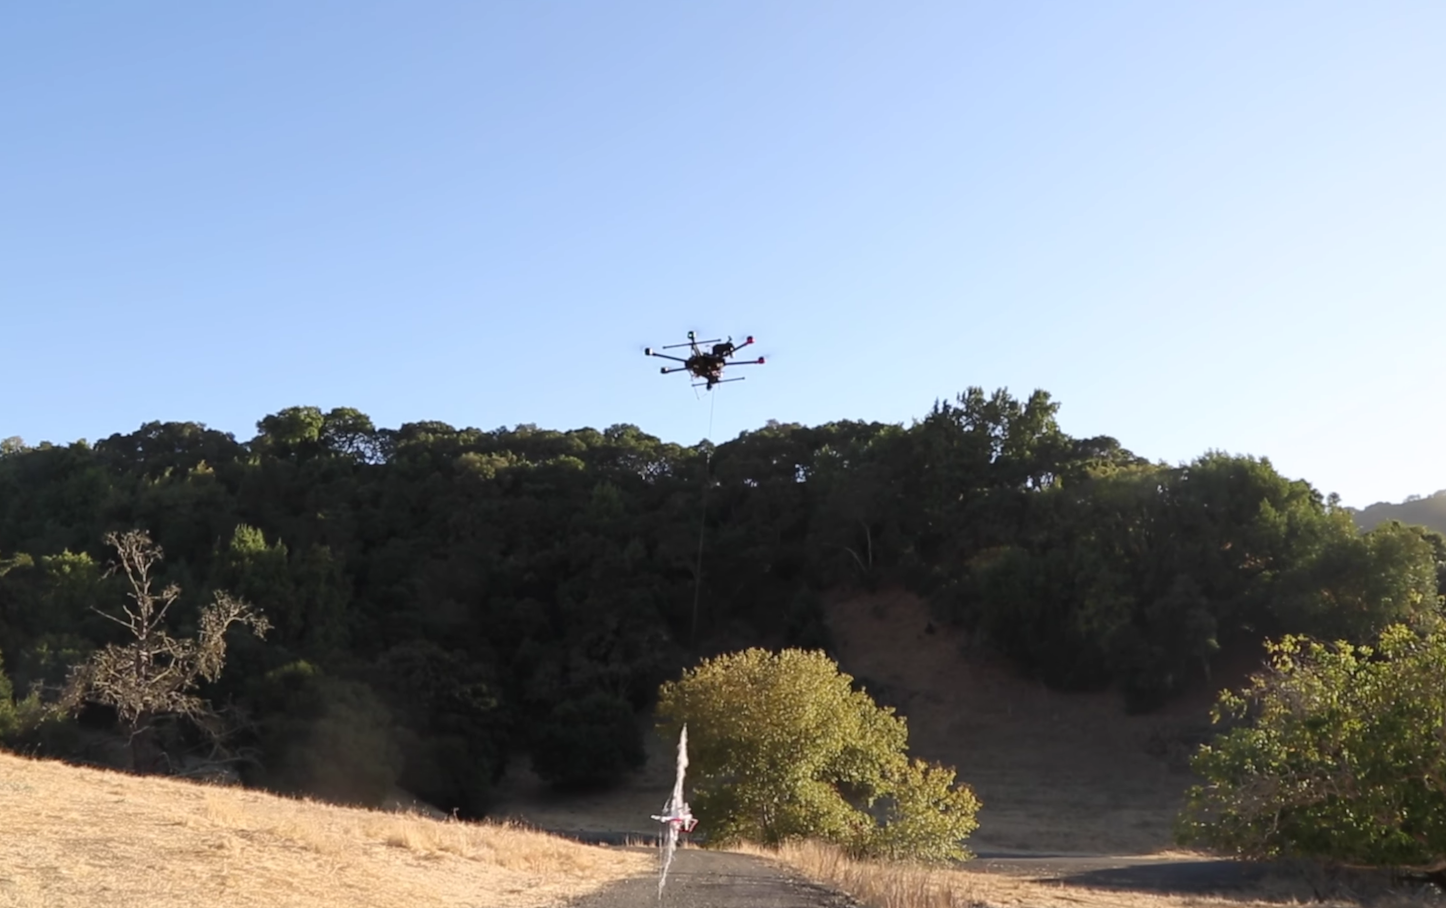 Catching drones with drones